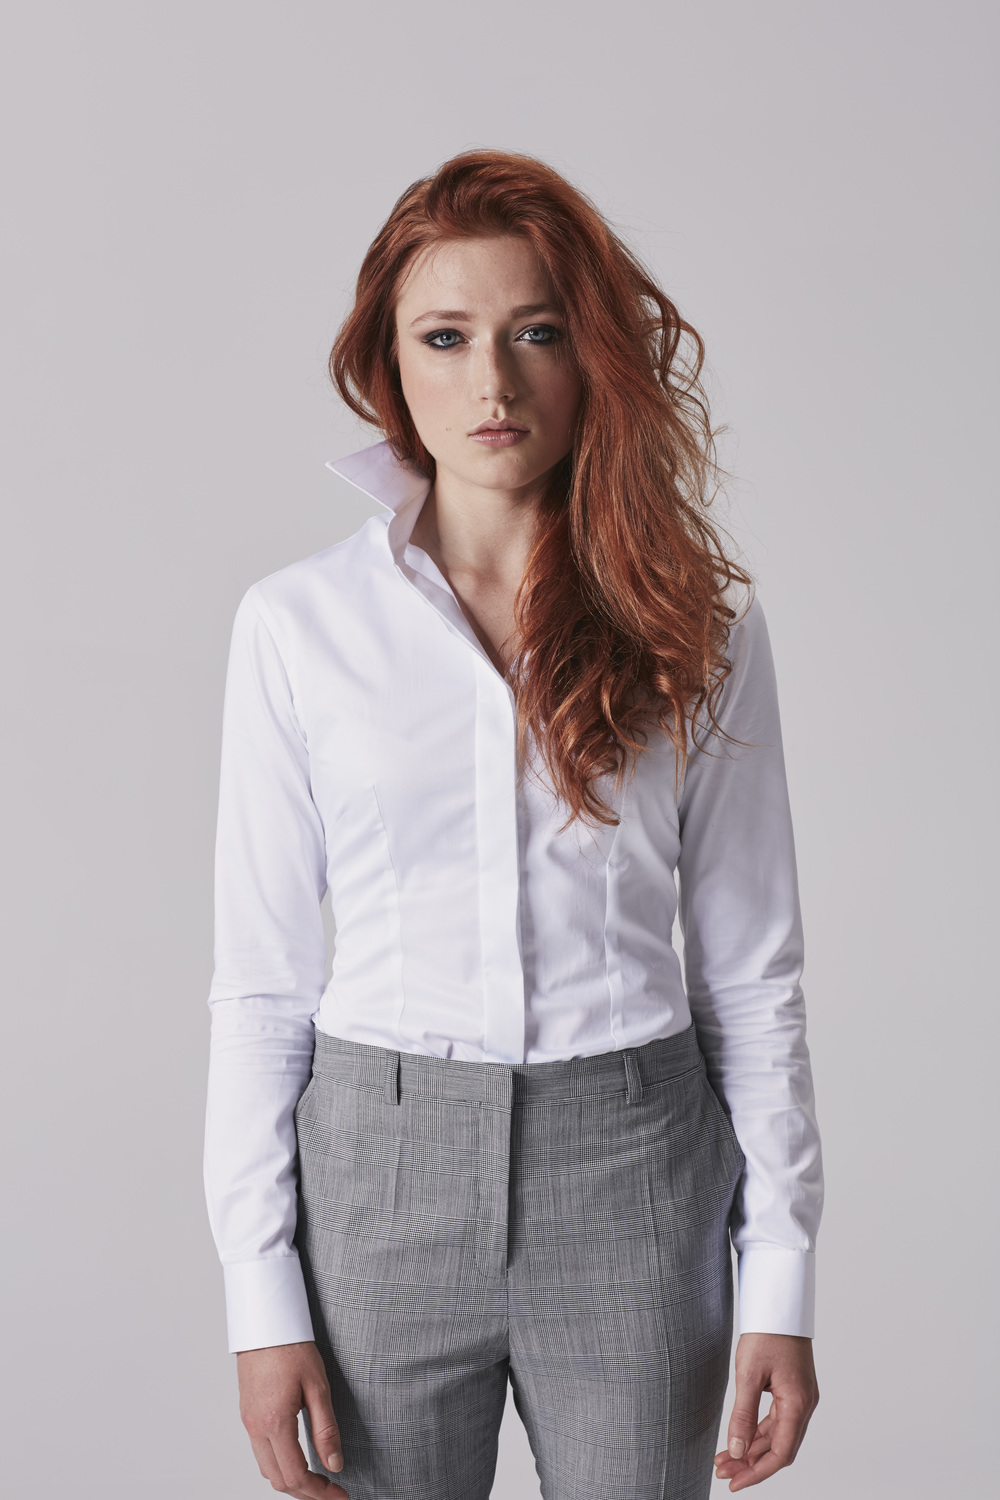 Womens white business shirt.jpg